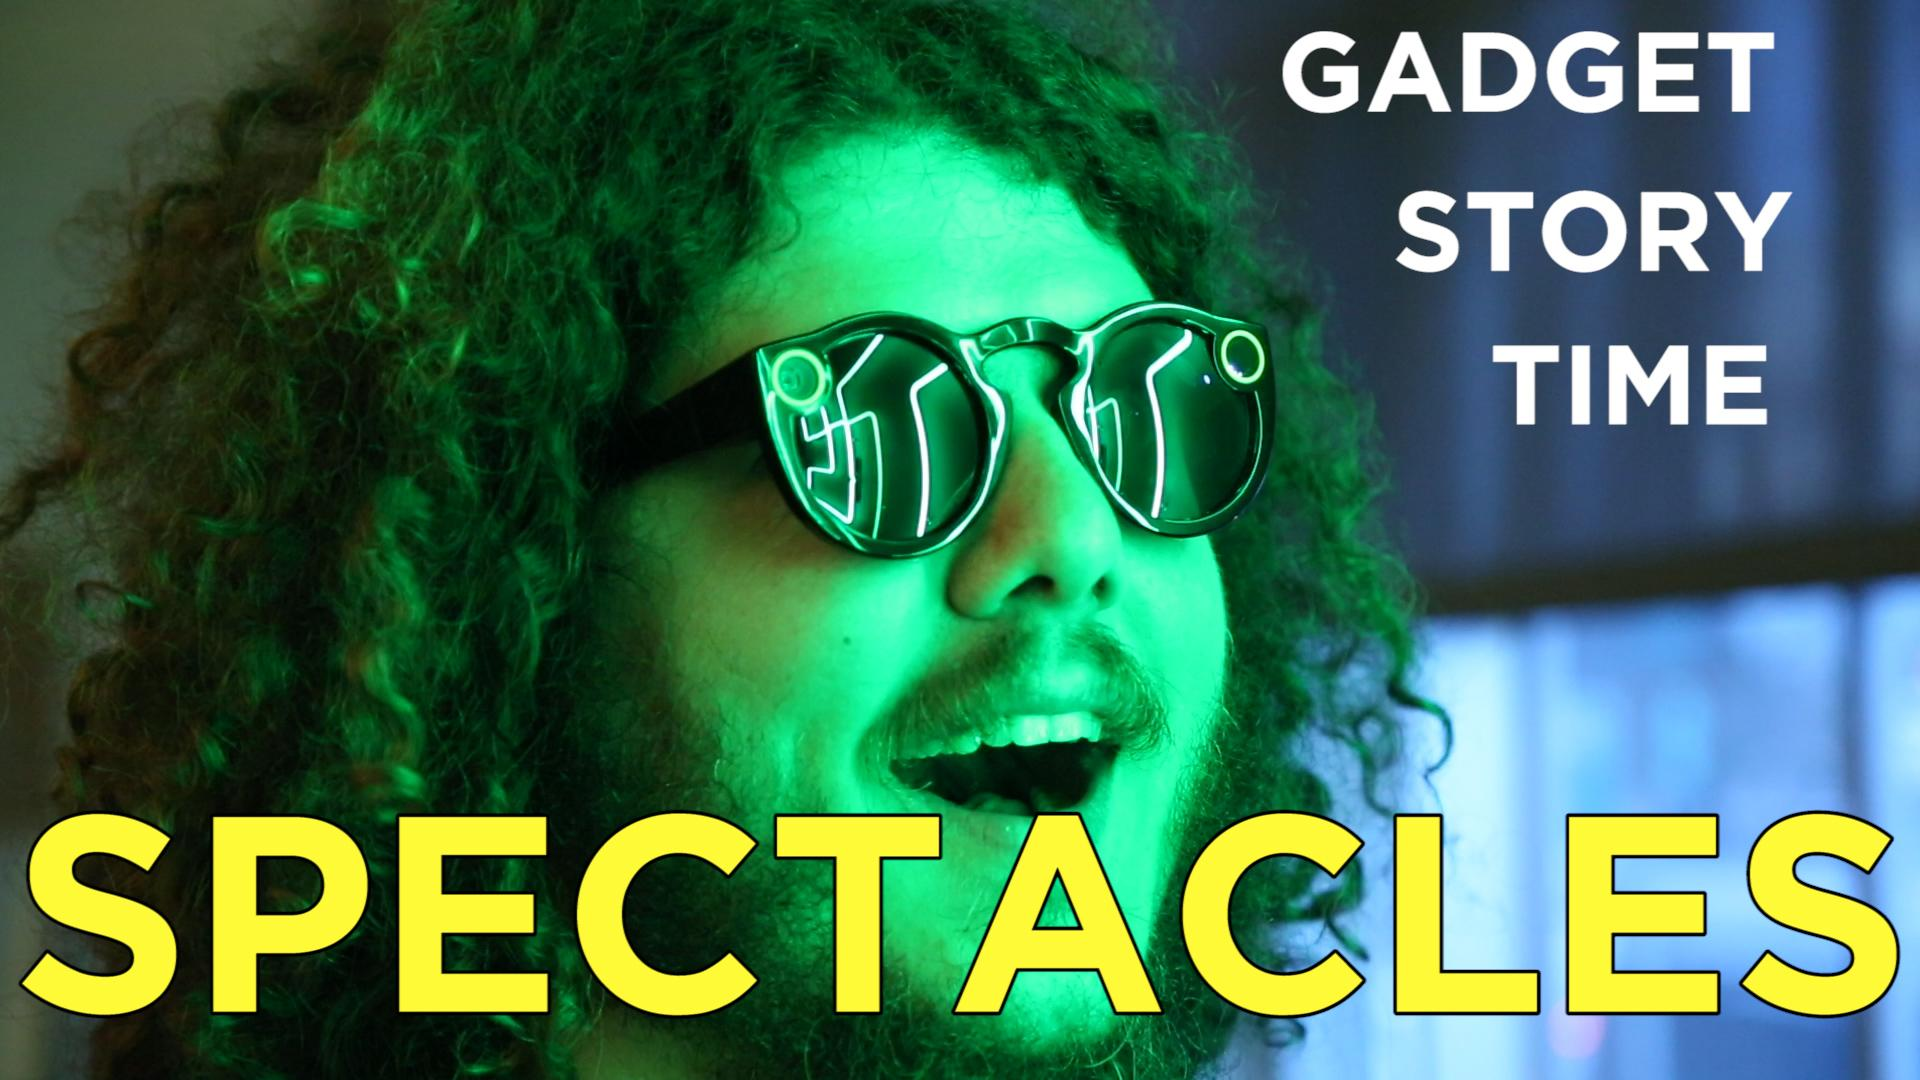 Gadget Story Time with Spectacles